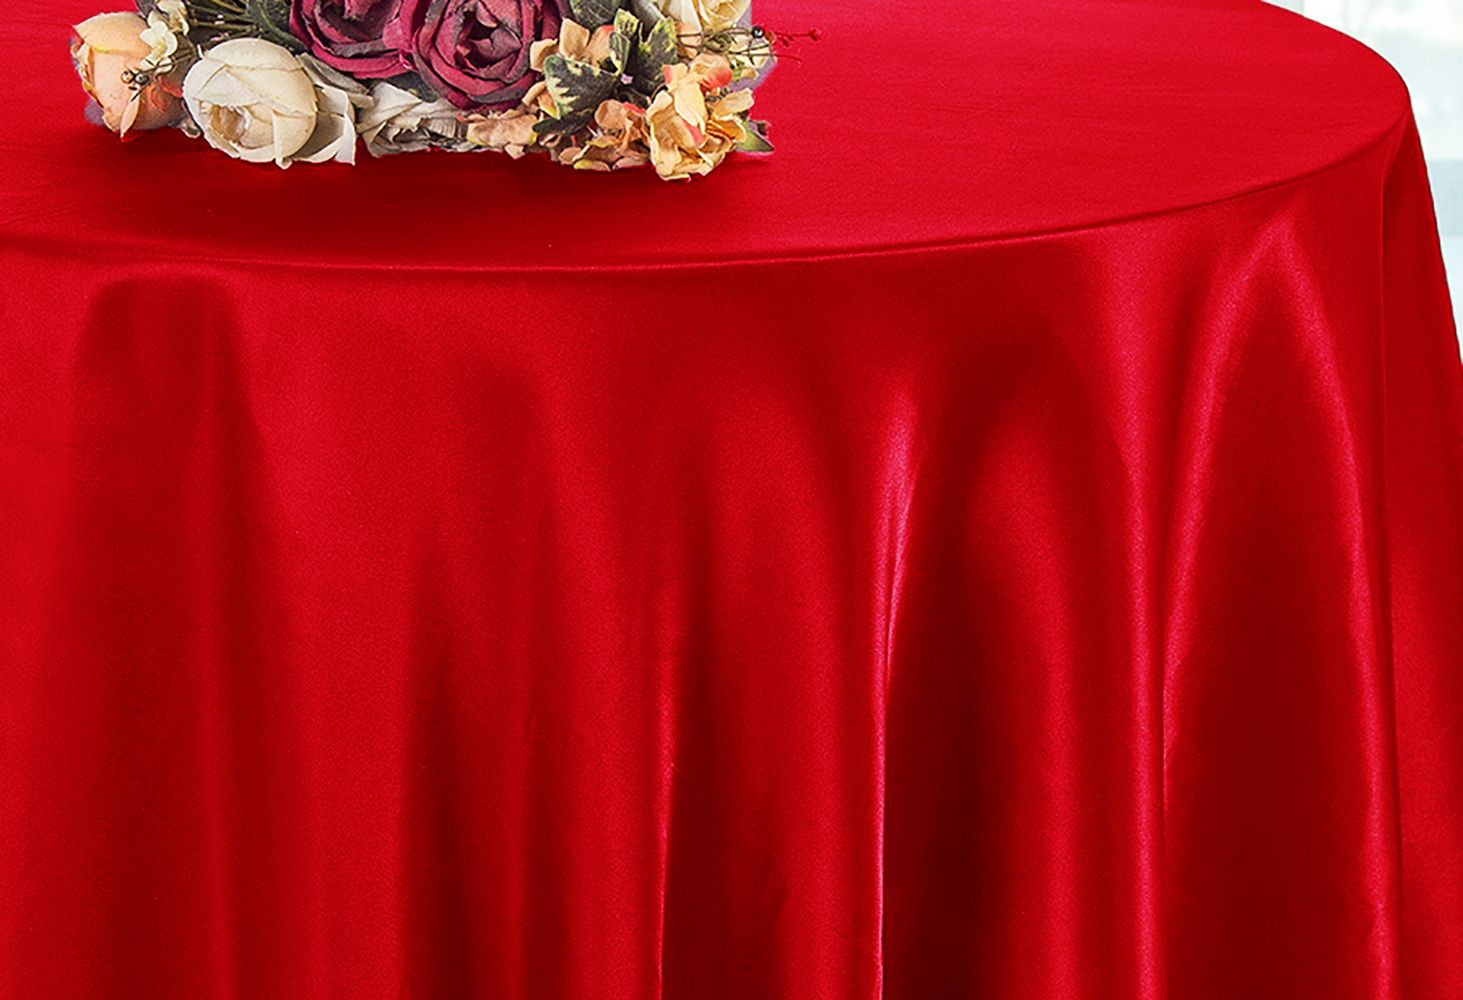 90 Inch Red Satin Tablecloths Table